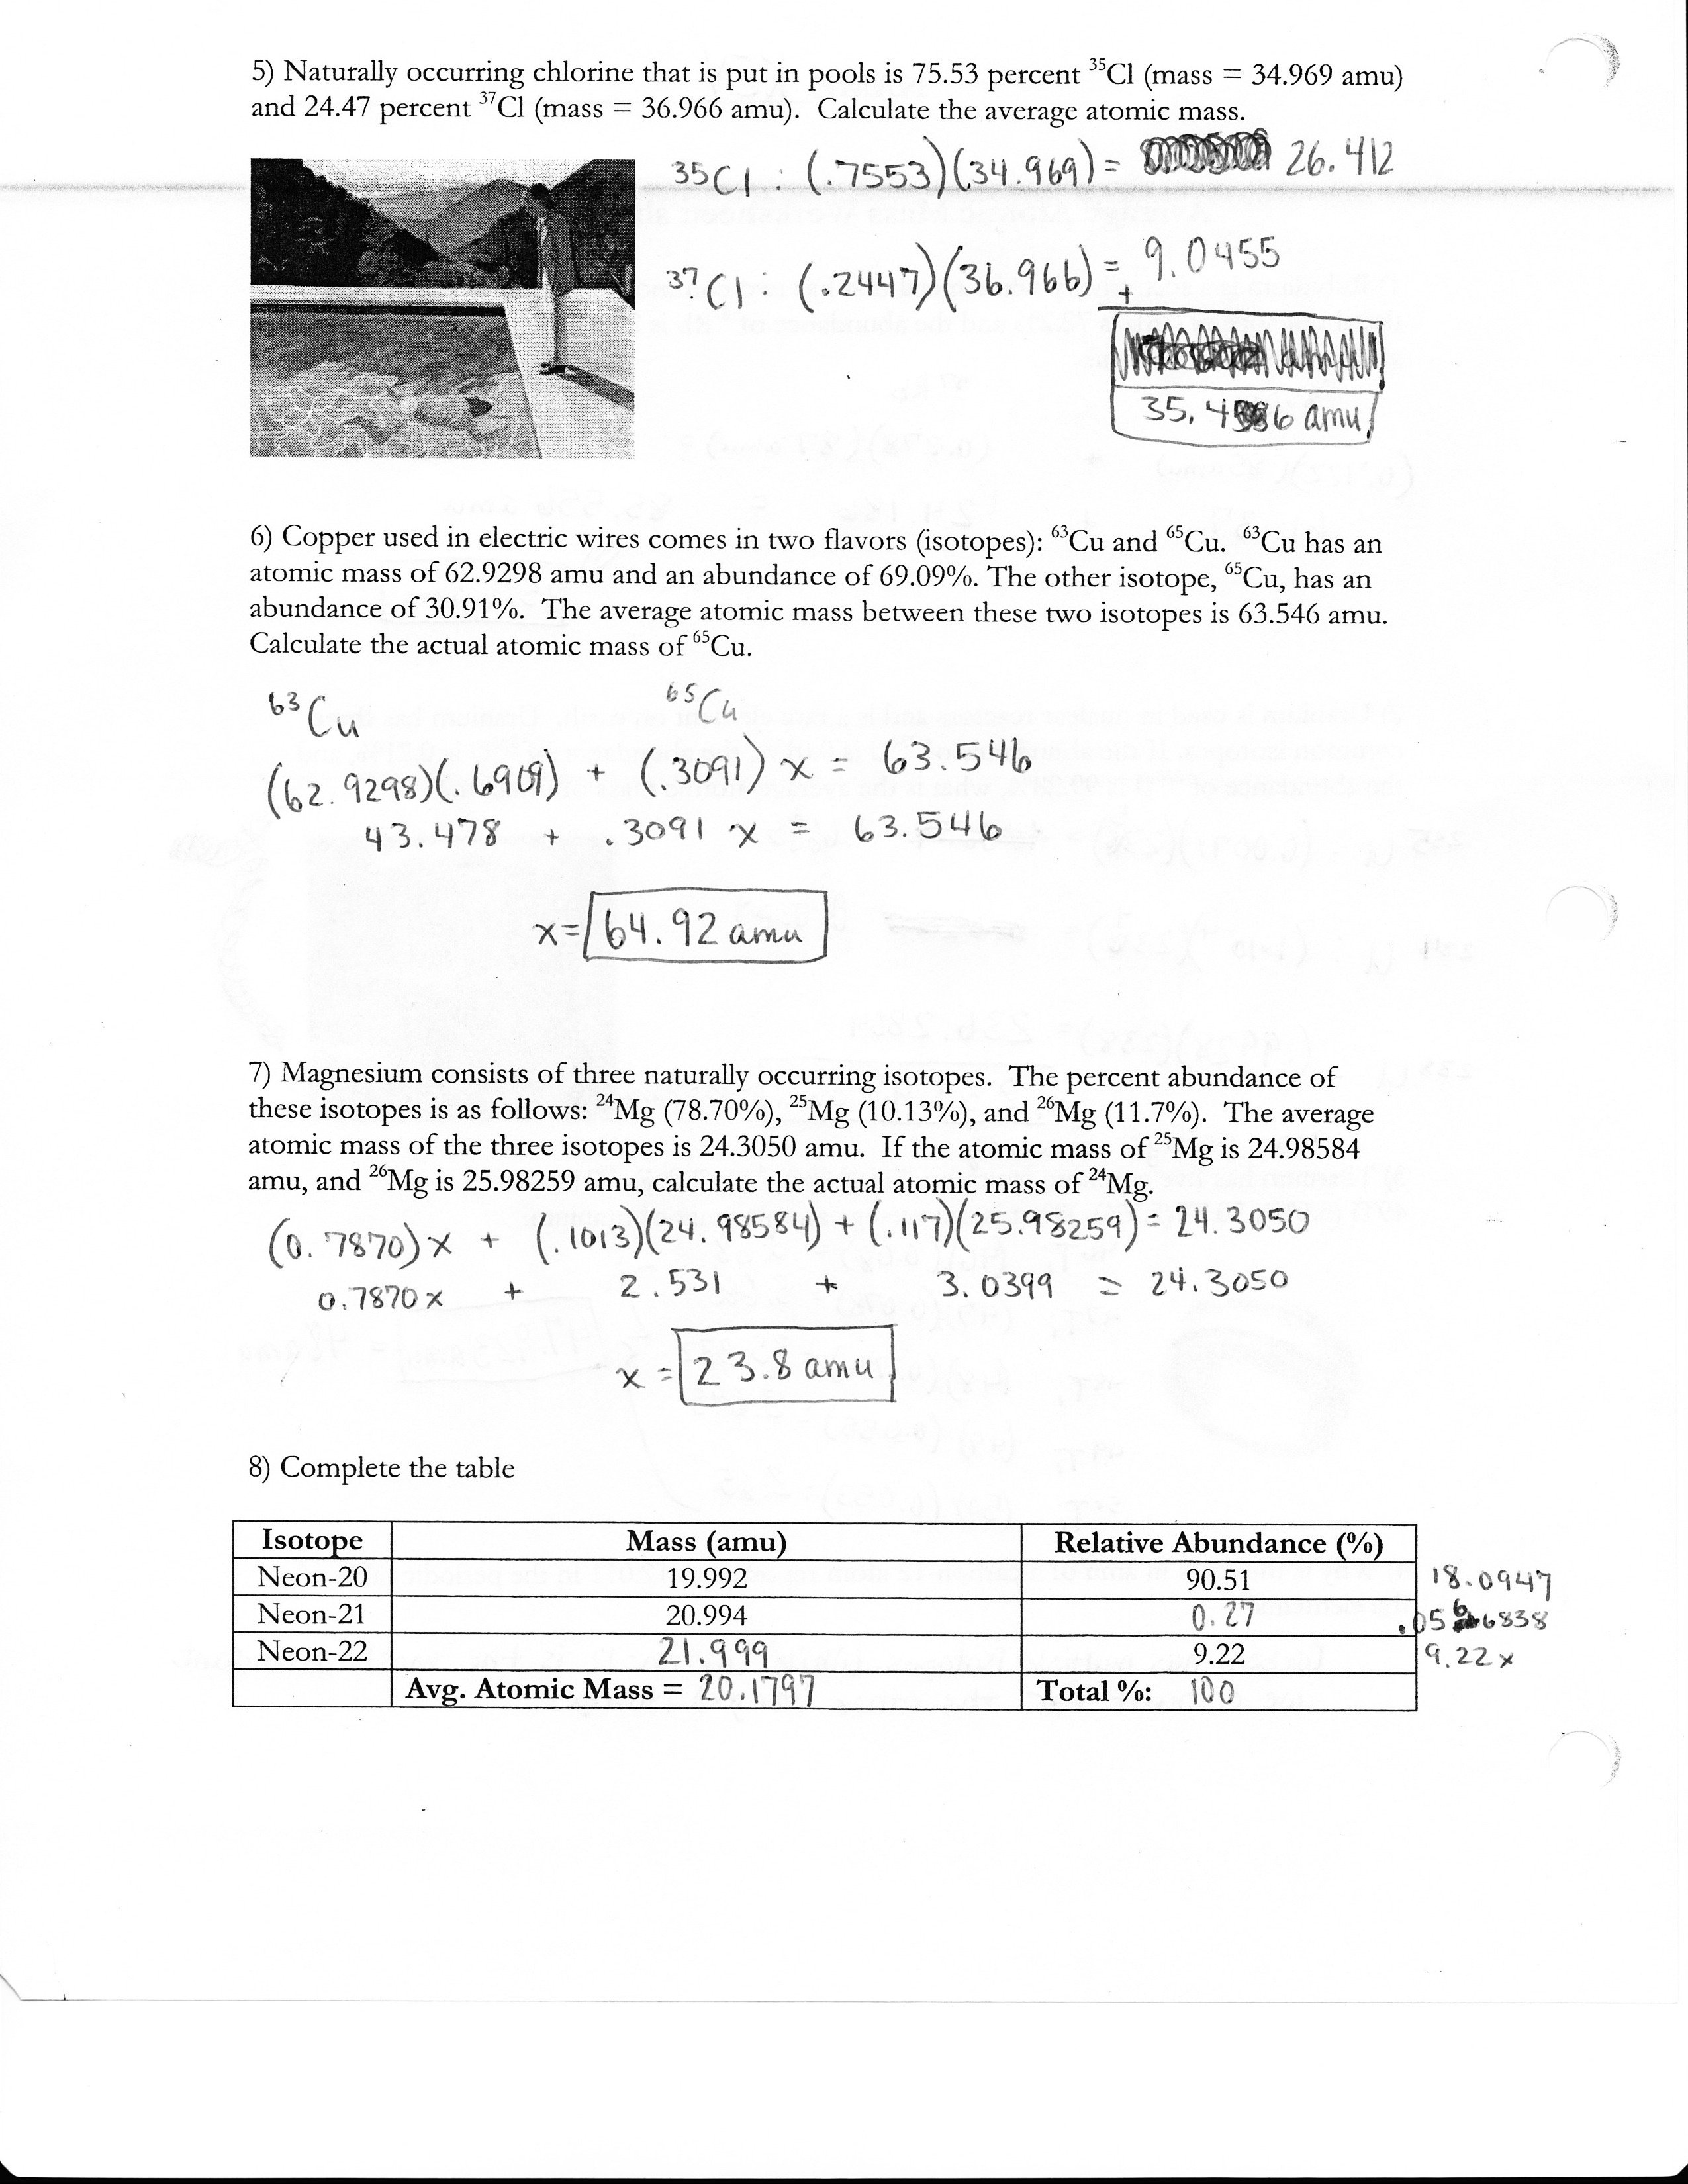 Answers To Side 1 Of Atomic Mass Worksheet Answers To Side, Atomic